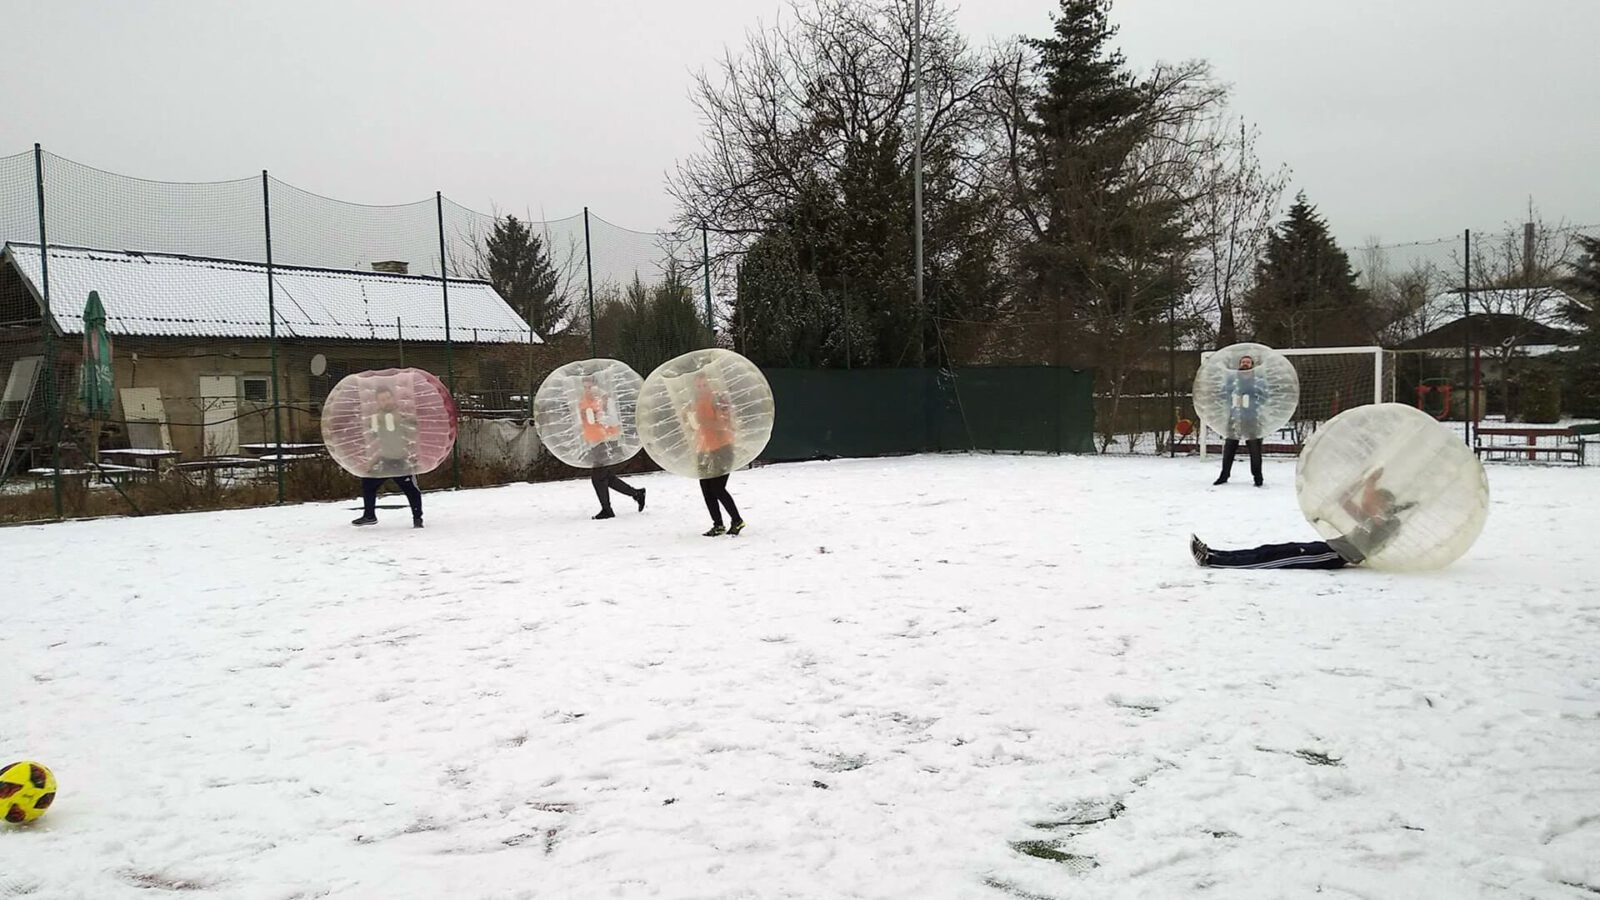 Bubble football in winter